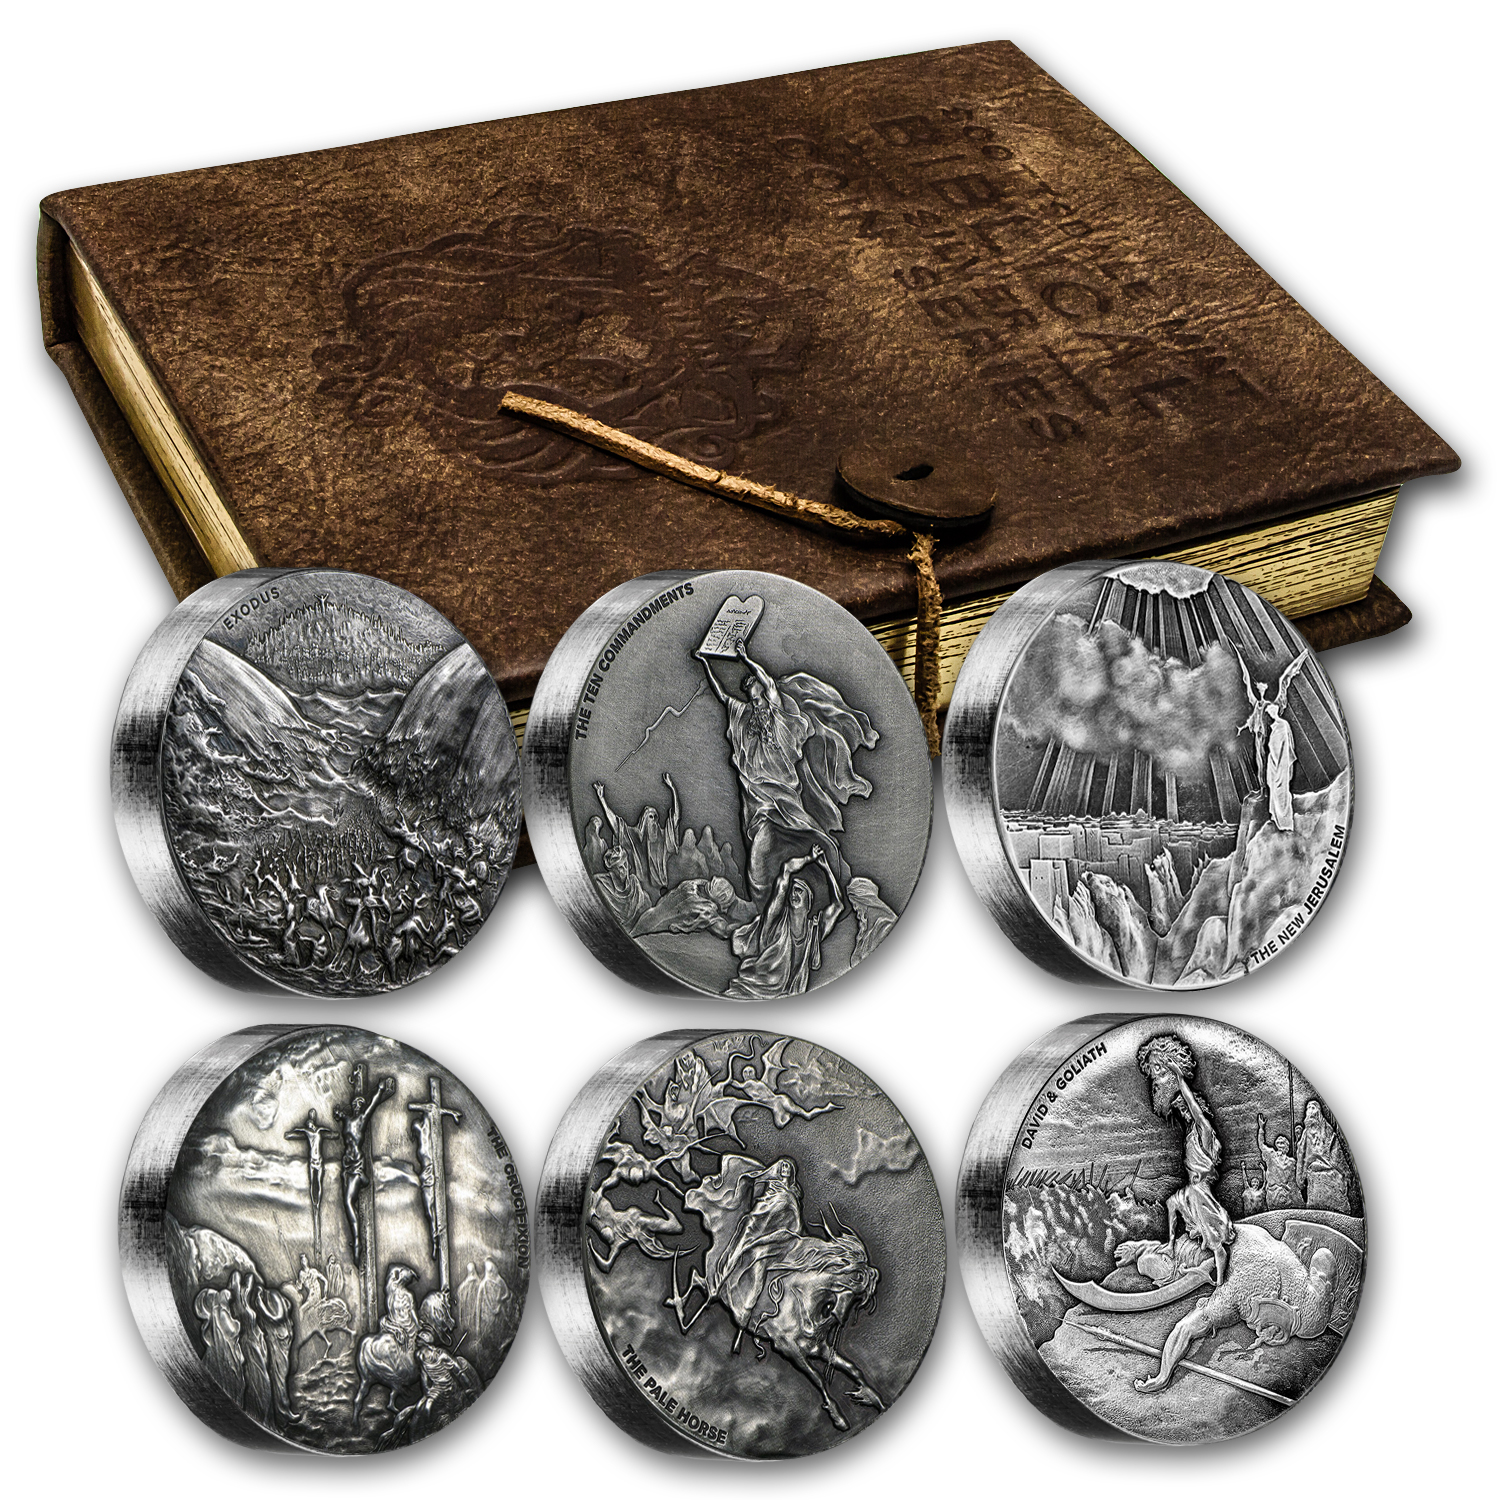 2015 6-Coin Silver Set - Biblical Series (Matching Serial #'s)